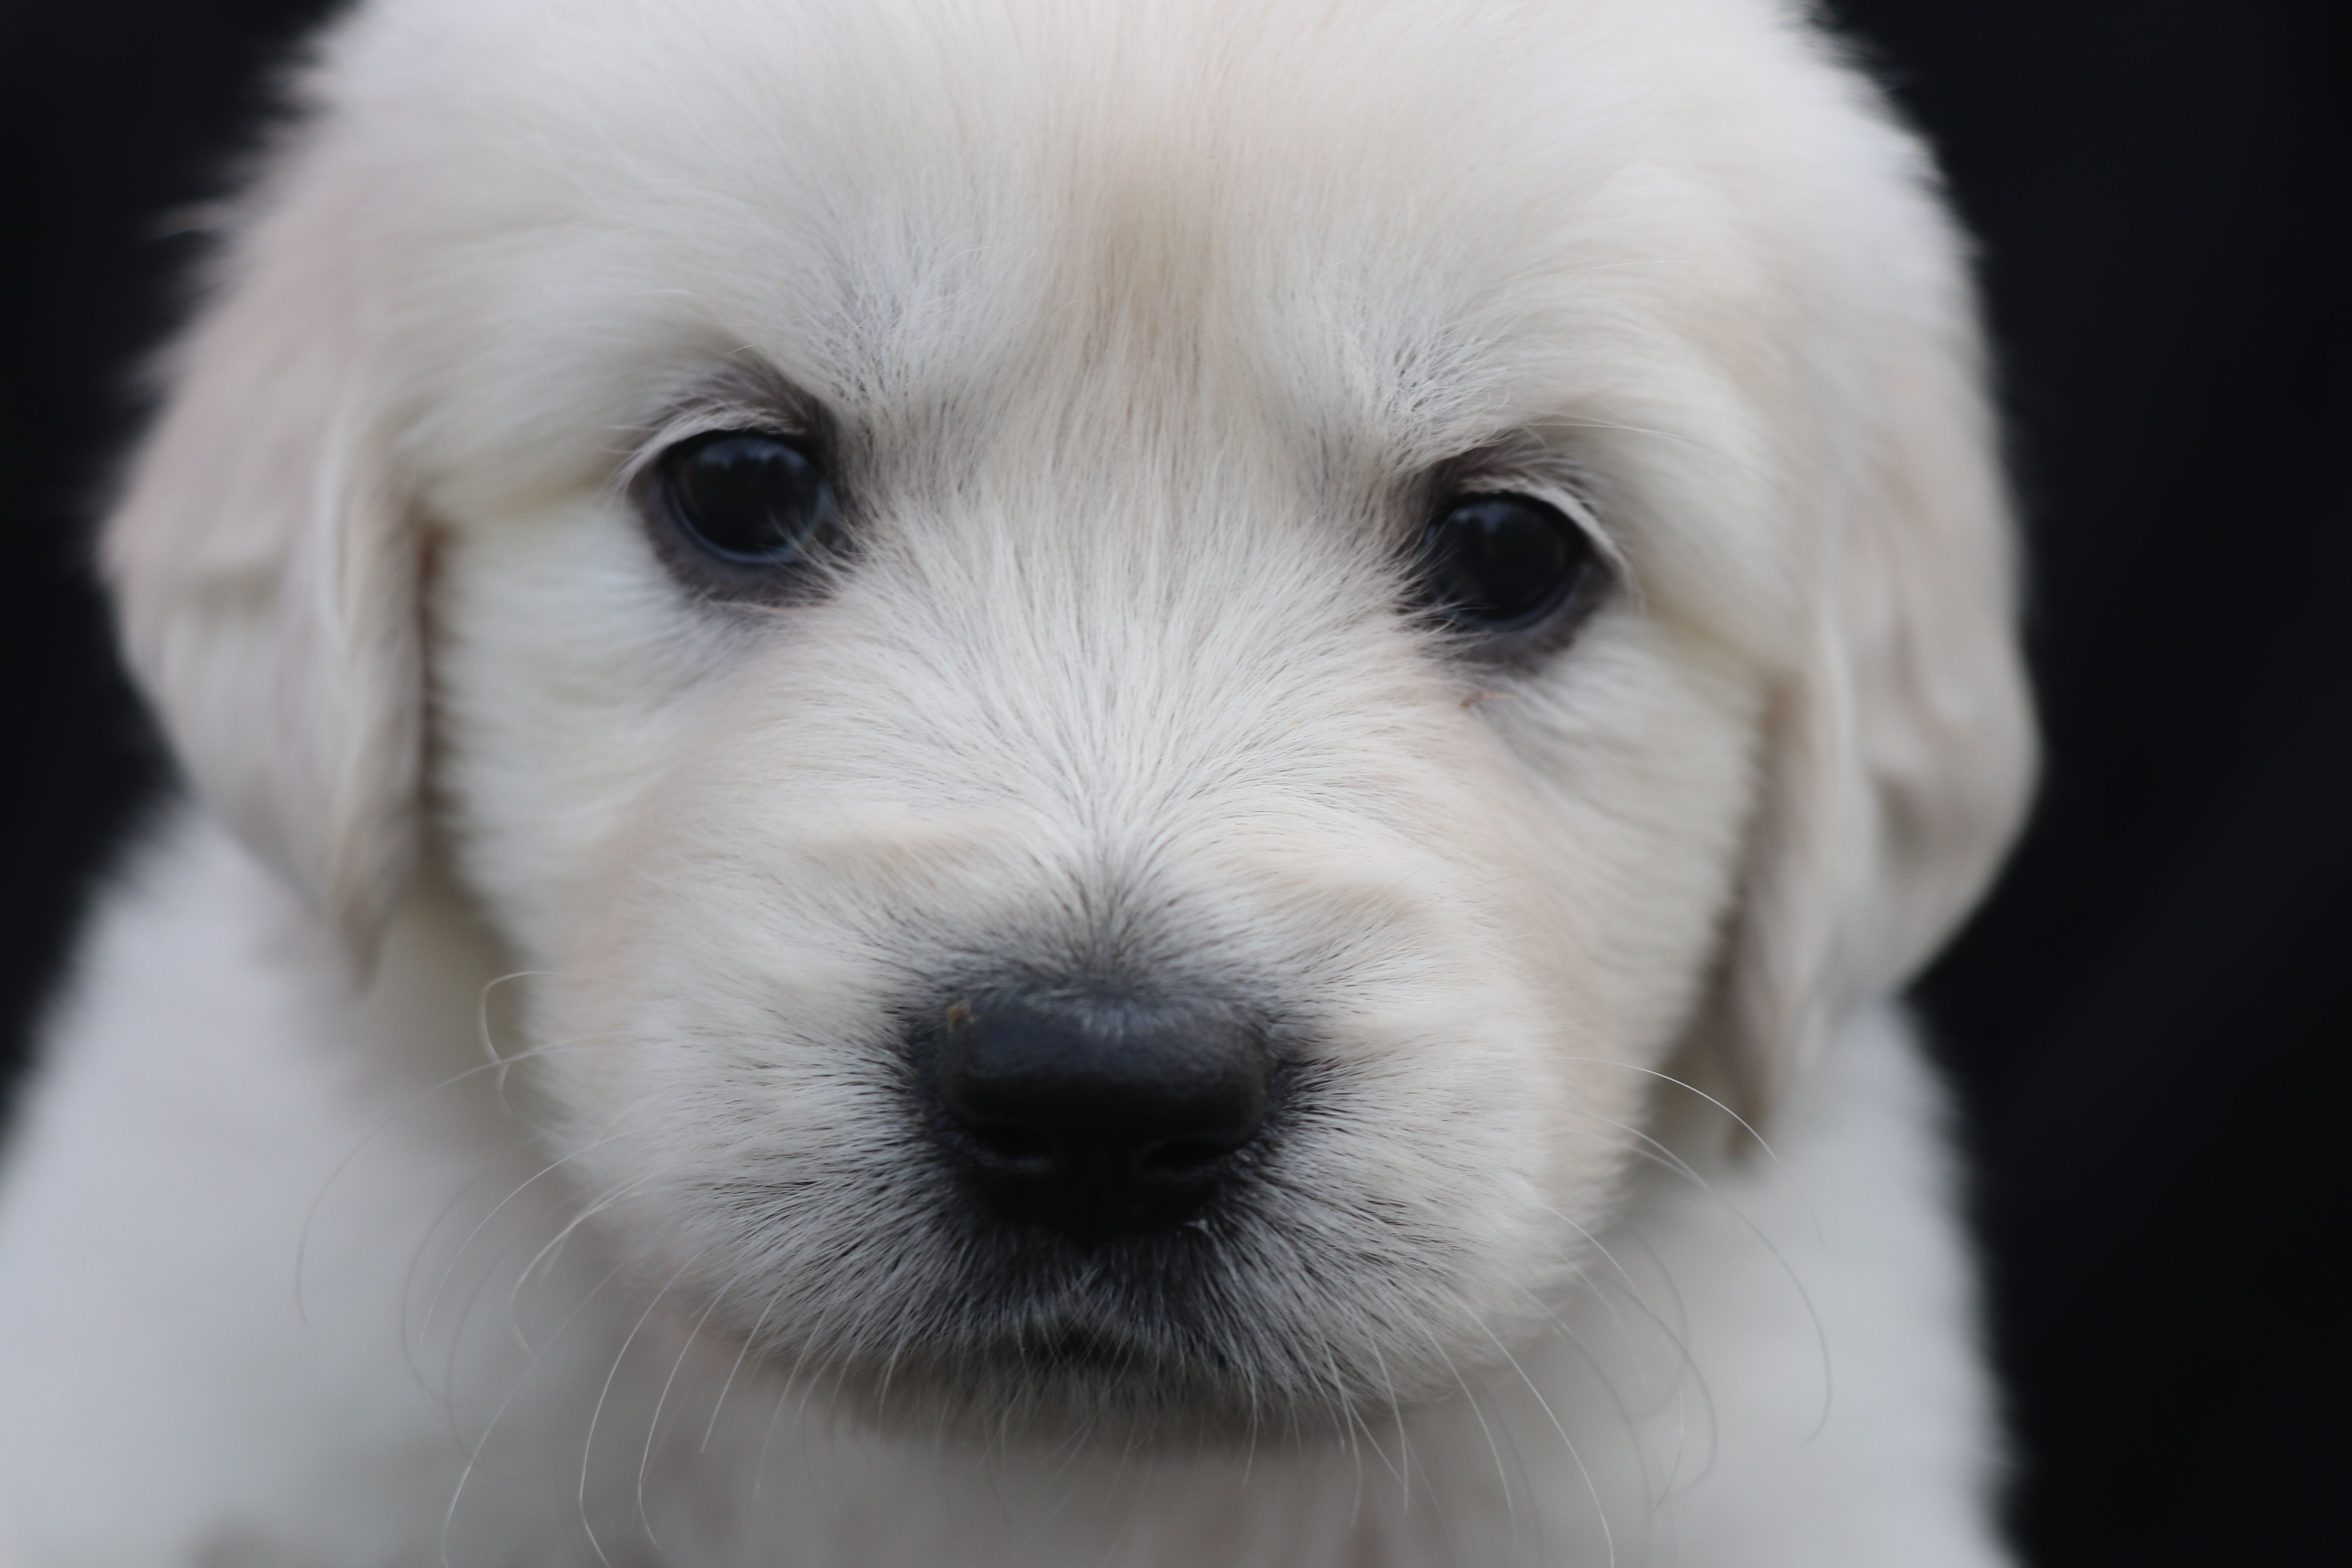 Rosie Akc Golden Retriever Puppy North Manchester Indiana